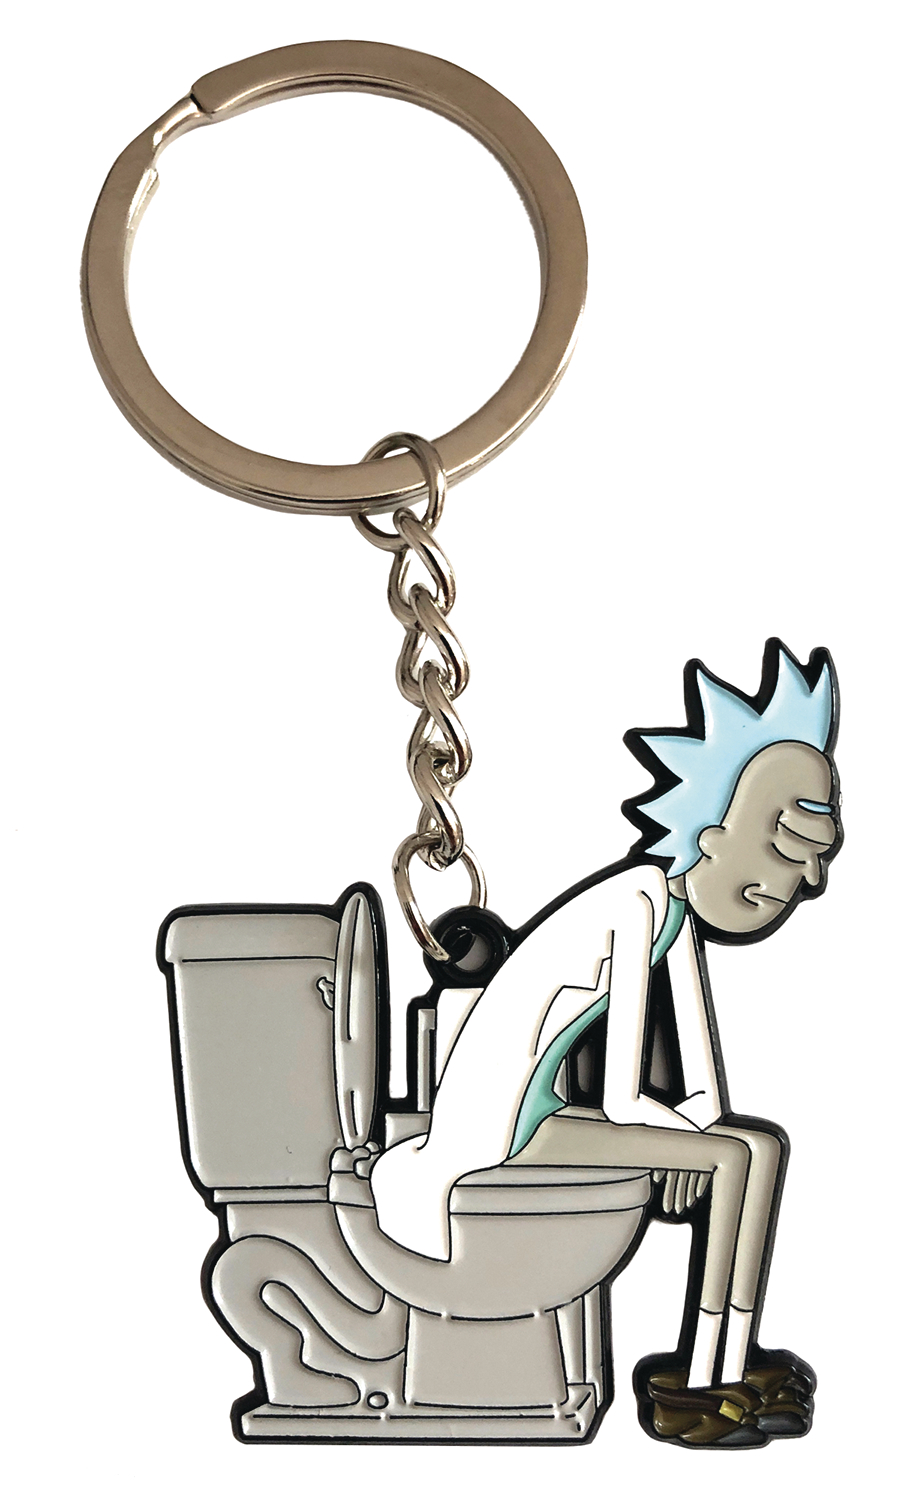 RICK AND MORTY RICK ON THRONE KEYCHAIN